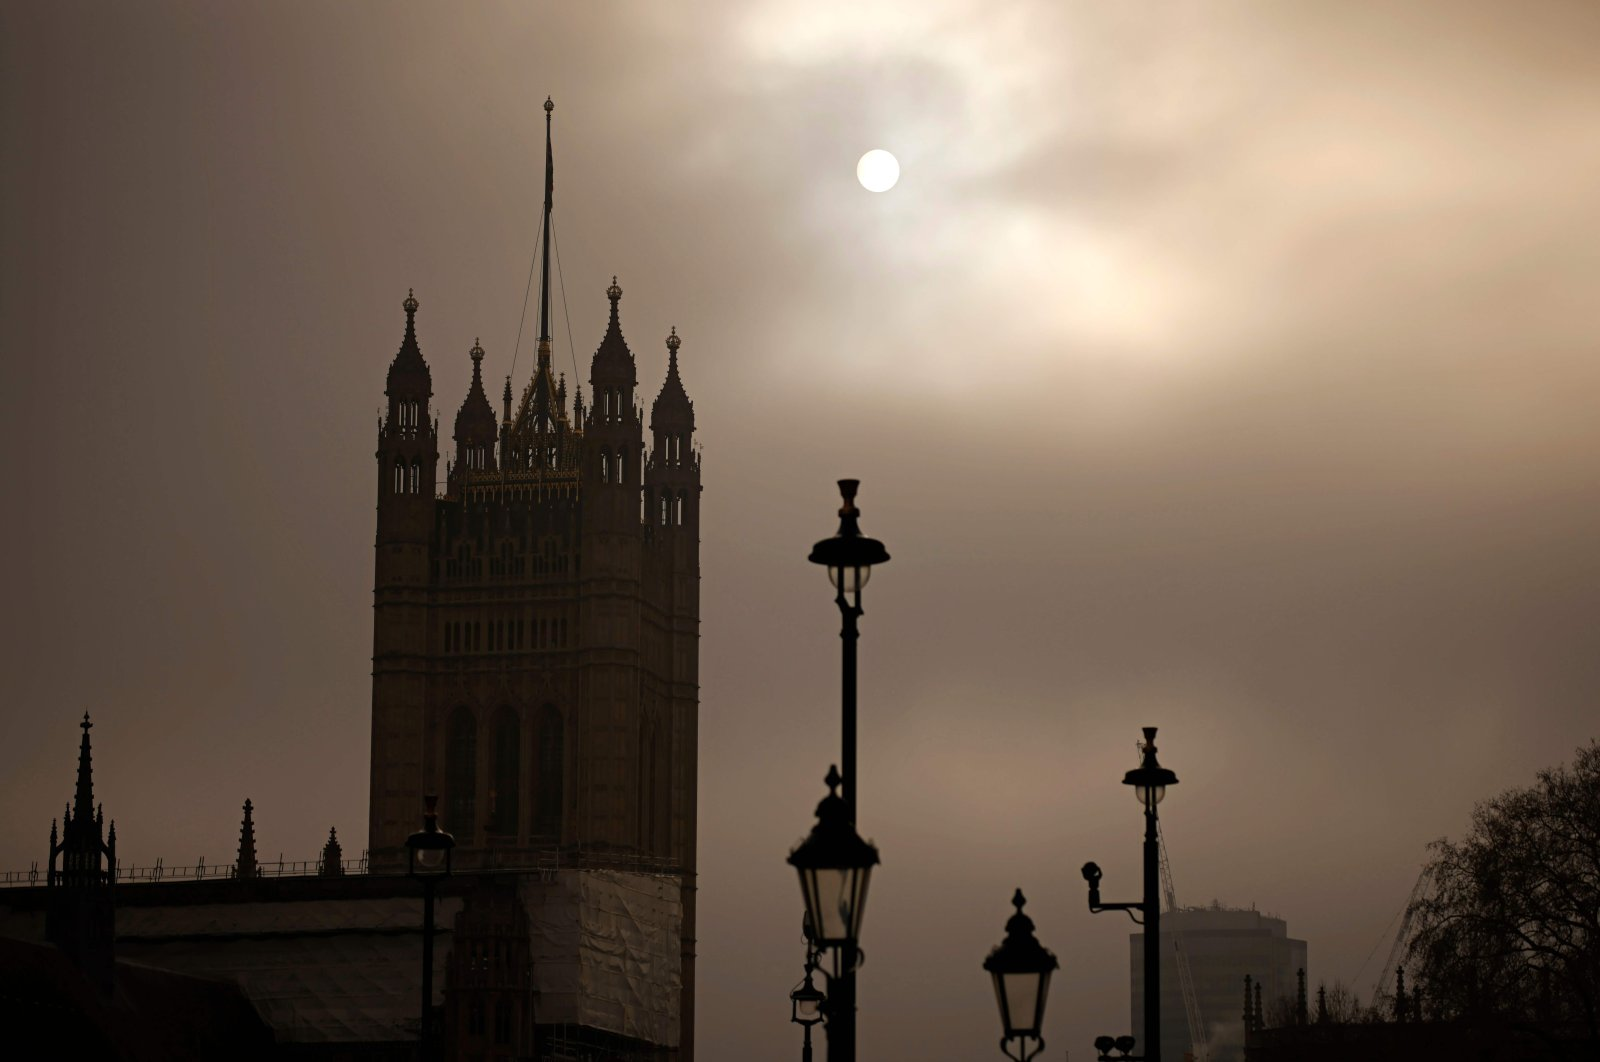 The sun is seen through the fog behind the Victoria Tower, part of the Palace of Westminster, home of the Houses of Parliament in central London on December 7, 2020. (AFP Photo)